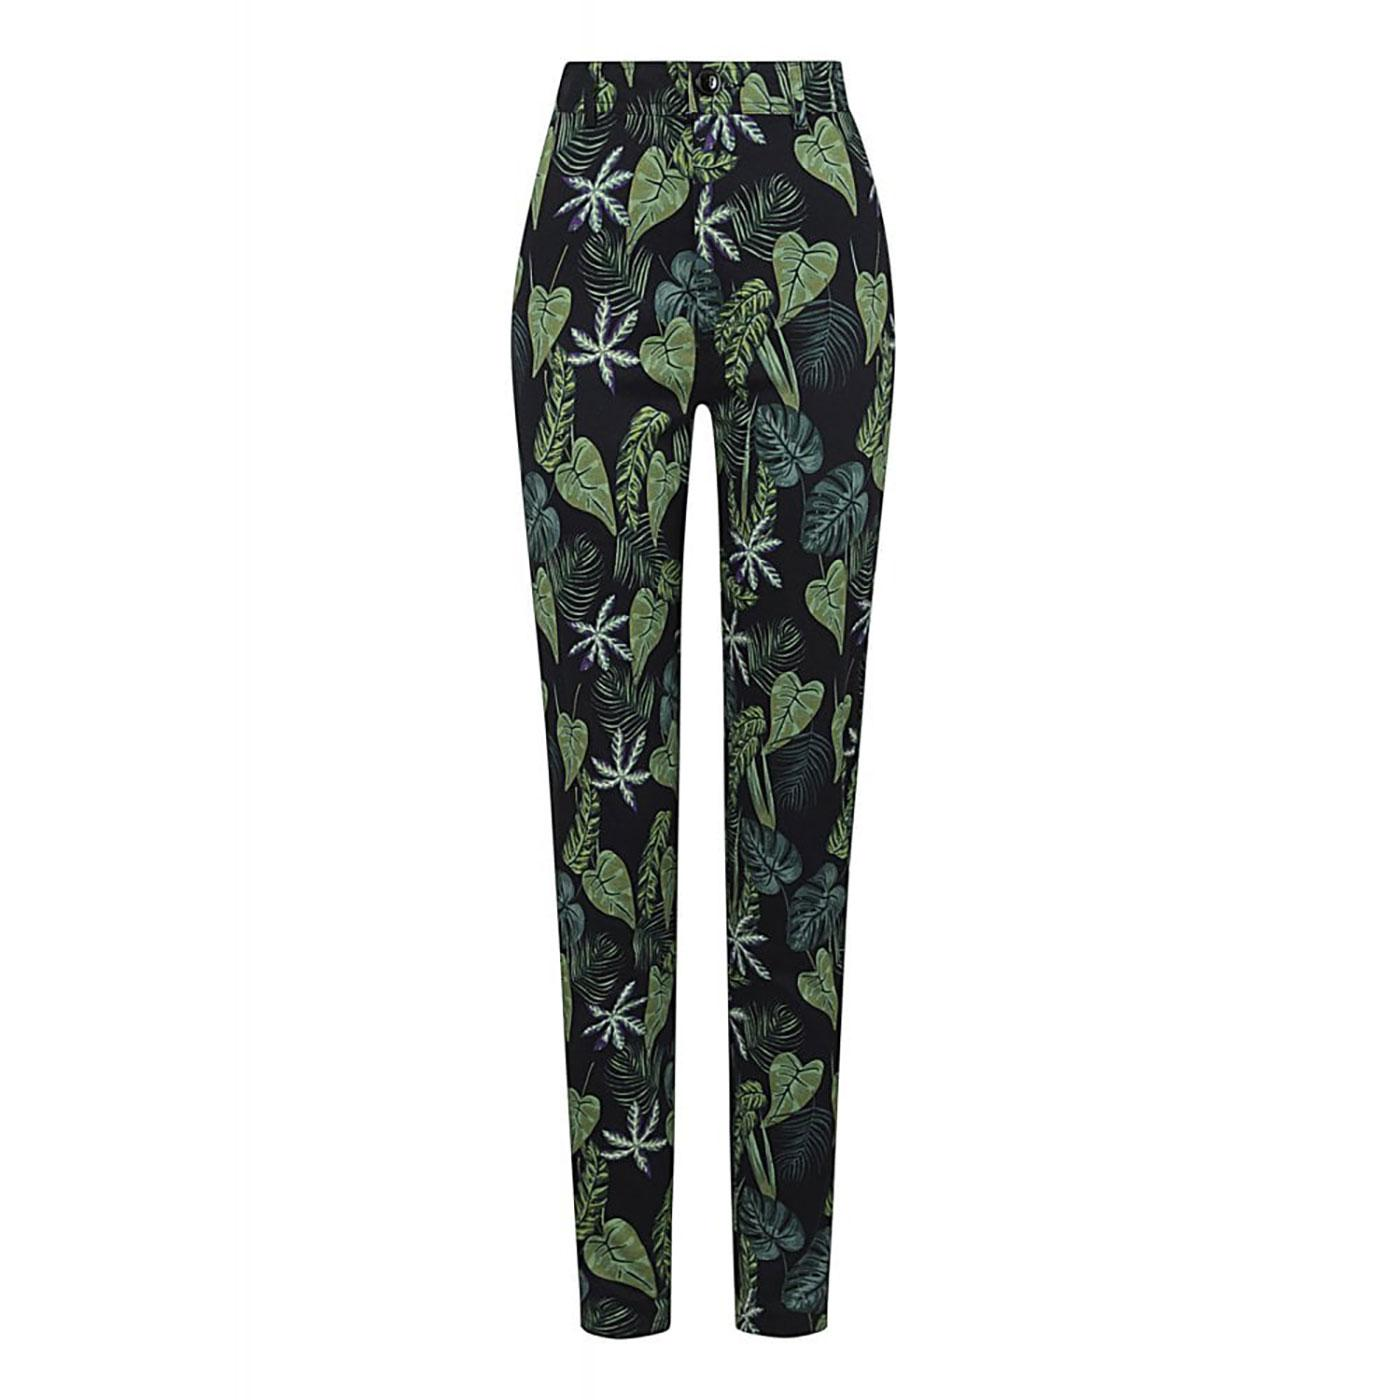 Maddie COLLECTIF Black Forest Vintage Trousers